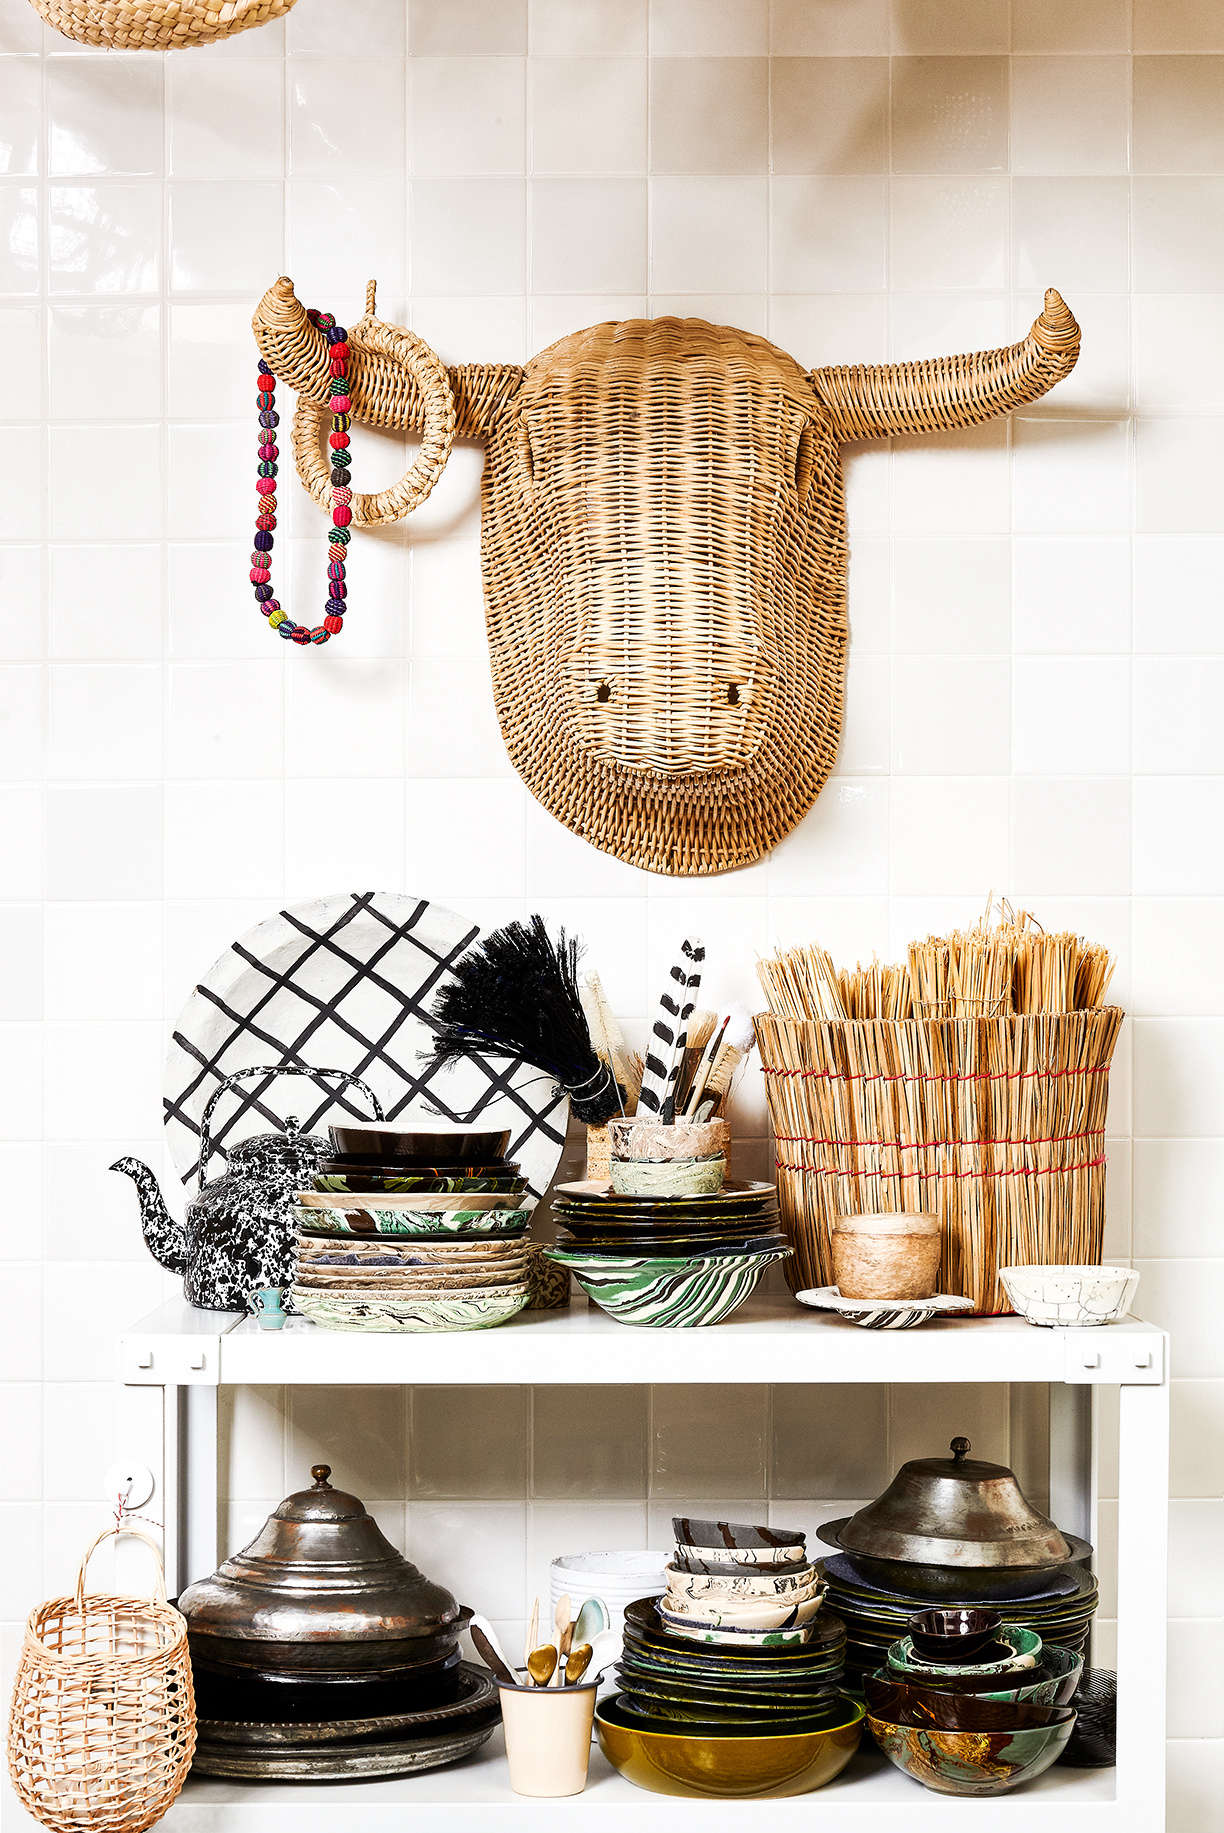 David displays his finds on a freestanding metal shelf. On the top level, a basket from Japan holds a set of rolled up wicker placemats, the spatter teapot is from Merci in Paris, and a paper feather byBrussels-based artist Isabelle de Borchgrave adds a jaunty note. The stacks of bowls are by French ceramicist Sylvie Saint-Andre Perrin(available from John Derian in NYC). On the lower shelf, the metal pieces are from Turkey, and the Shaker onion basket is from the Cooper Hewitt shop. David mounted awicker bull&#8